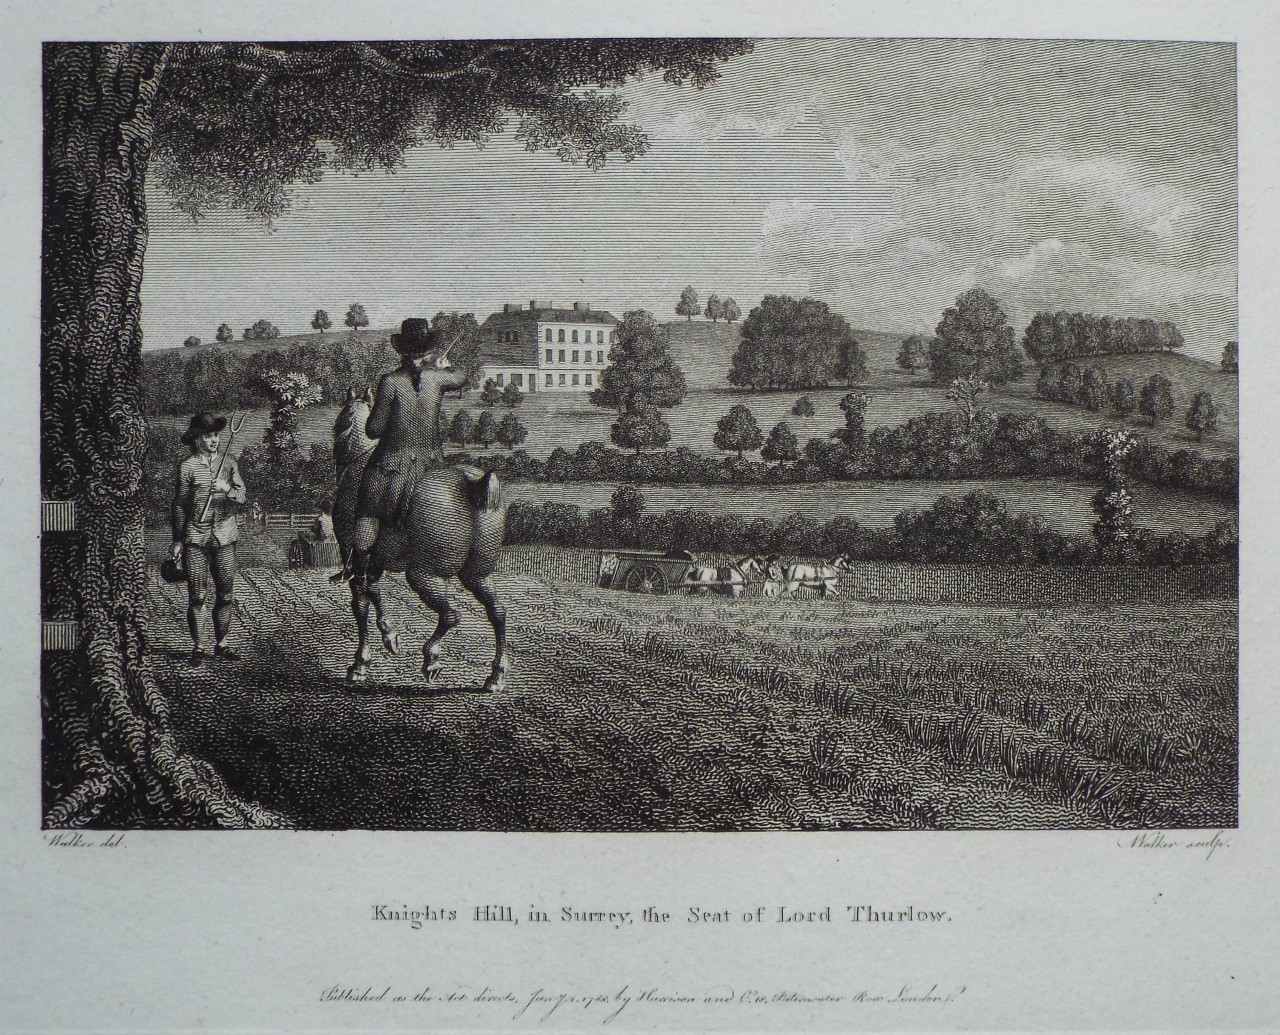 Print - Knight's Hill, in Surrey, the Seat of Lord Thurlow. -